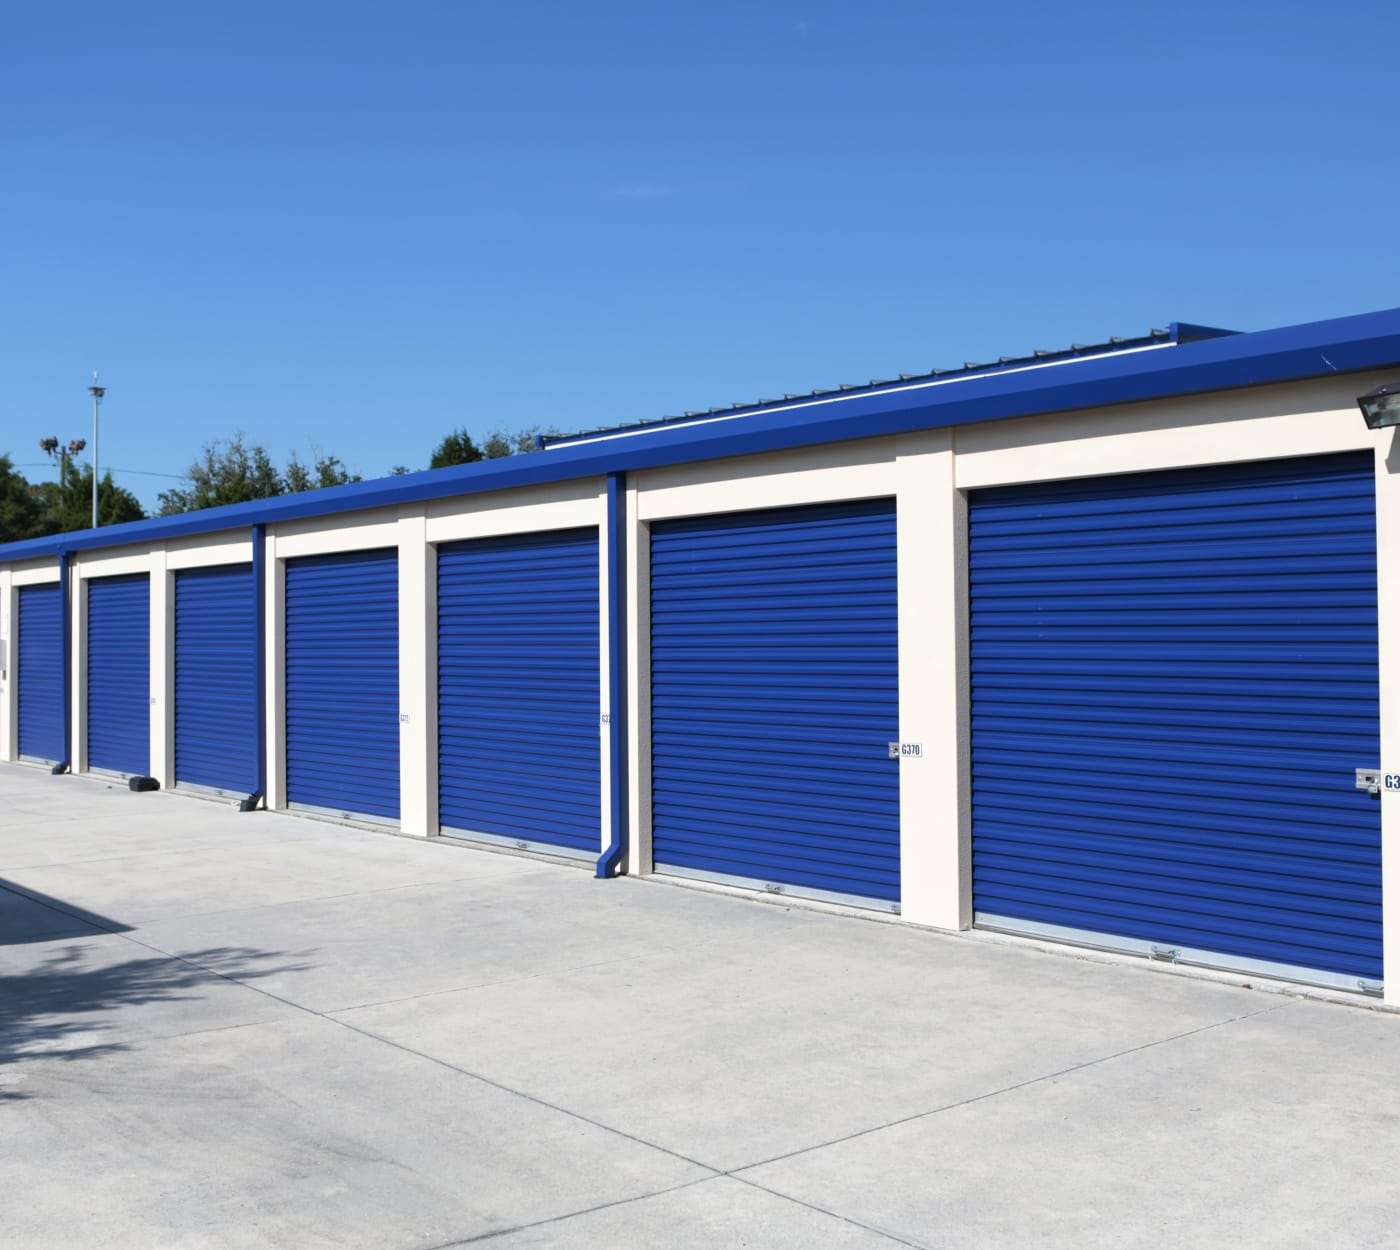 Exterior units at Midgard Self Storage in Lutz, Florida